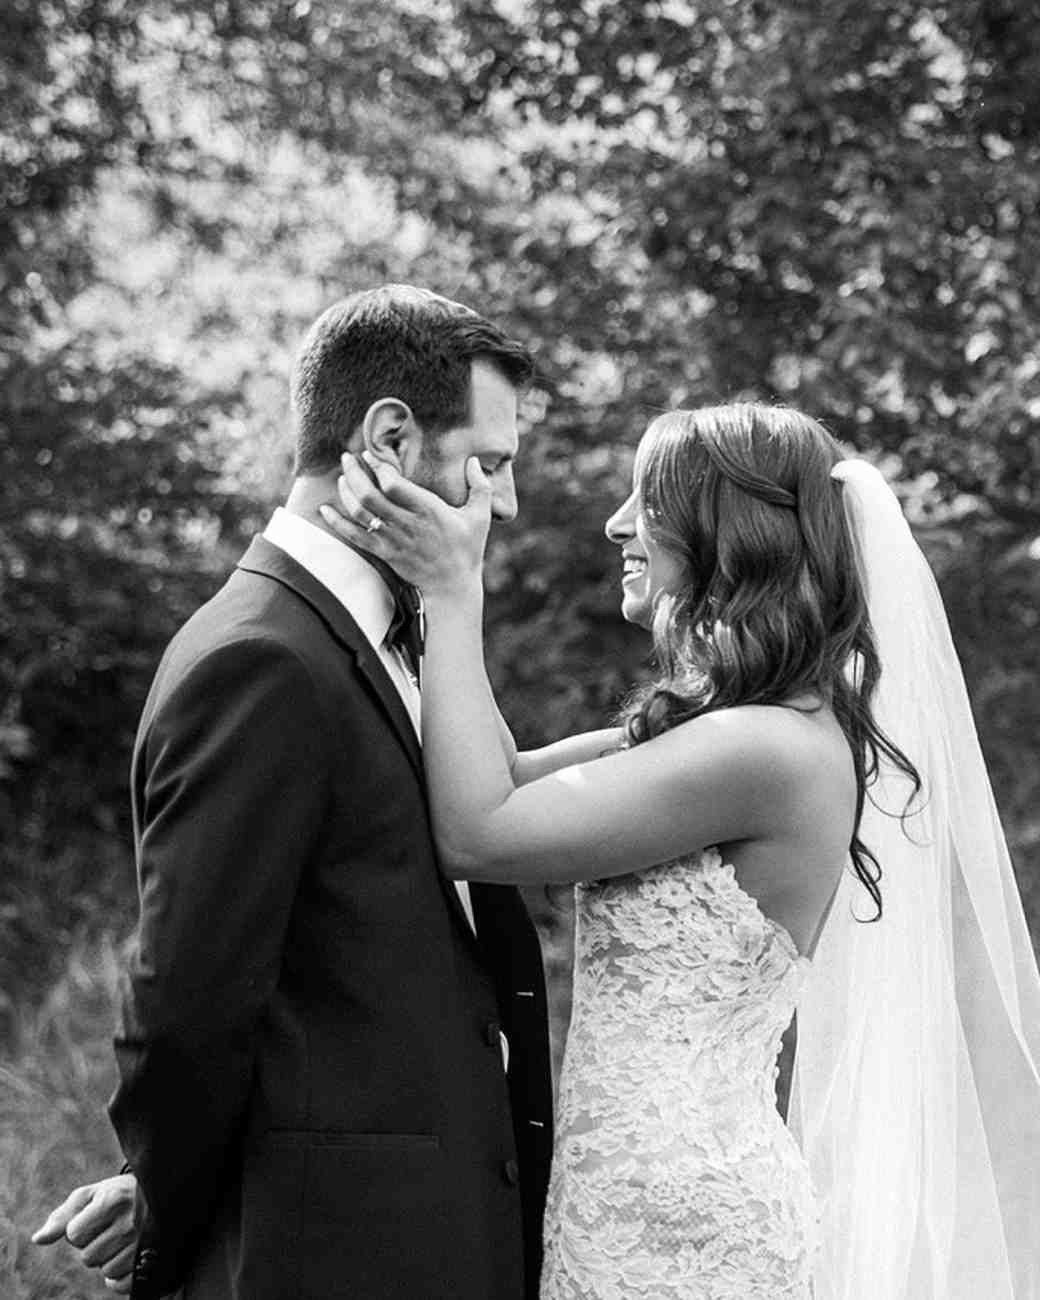 emotional-couple-wedding-photo-sarah-wight-photography-0716.jpg